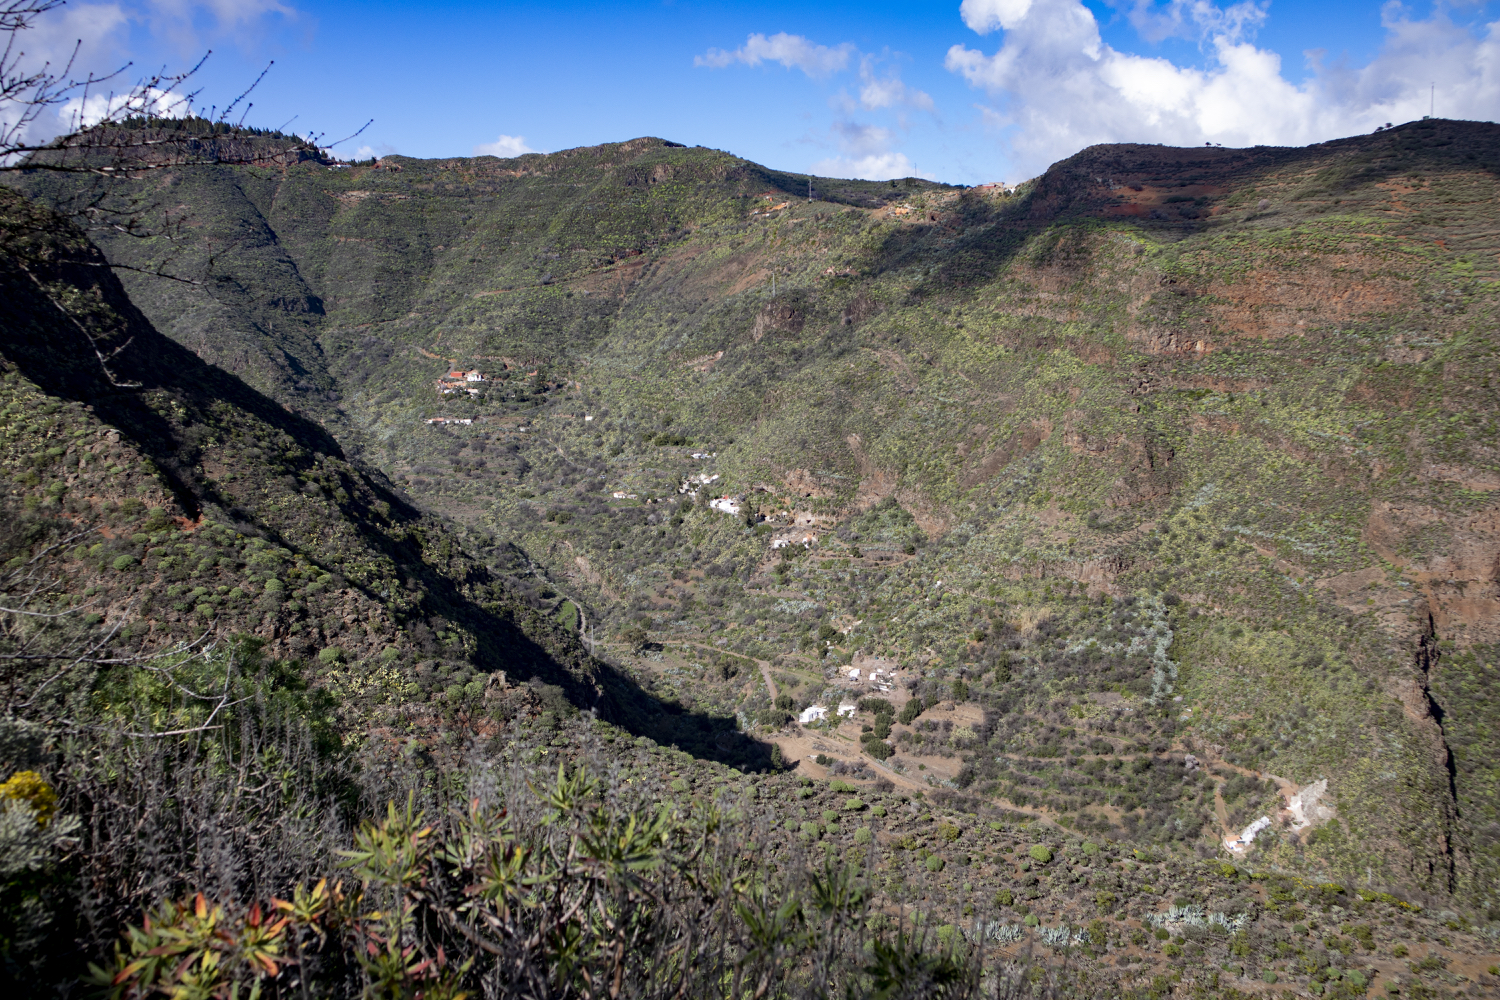 View to the upper part of the Barranco de Guayadeque